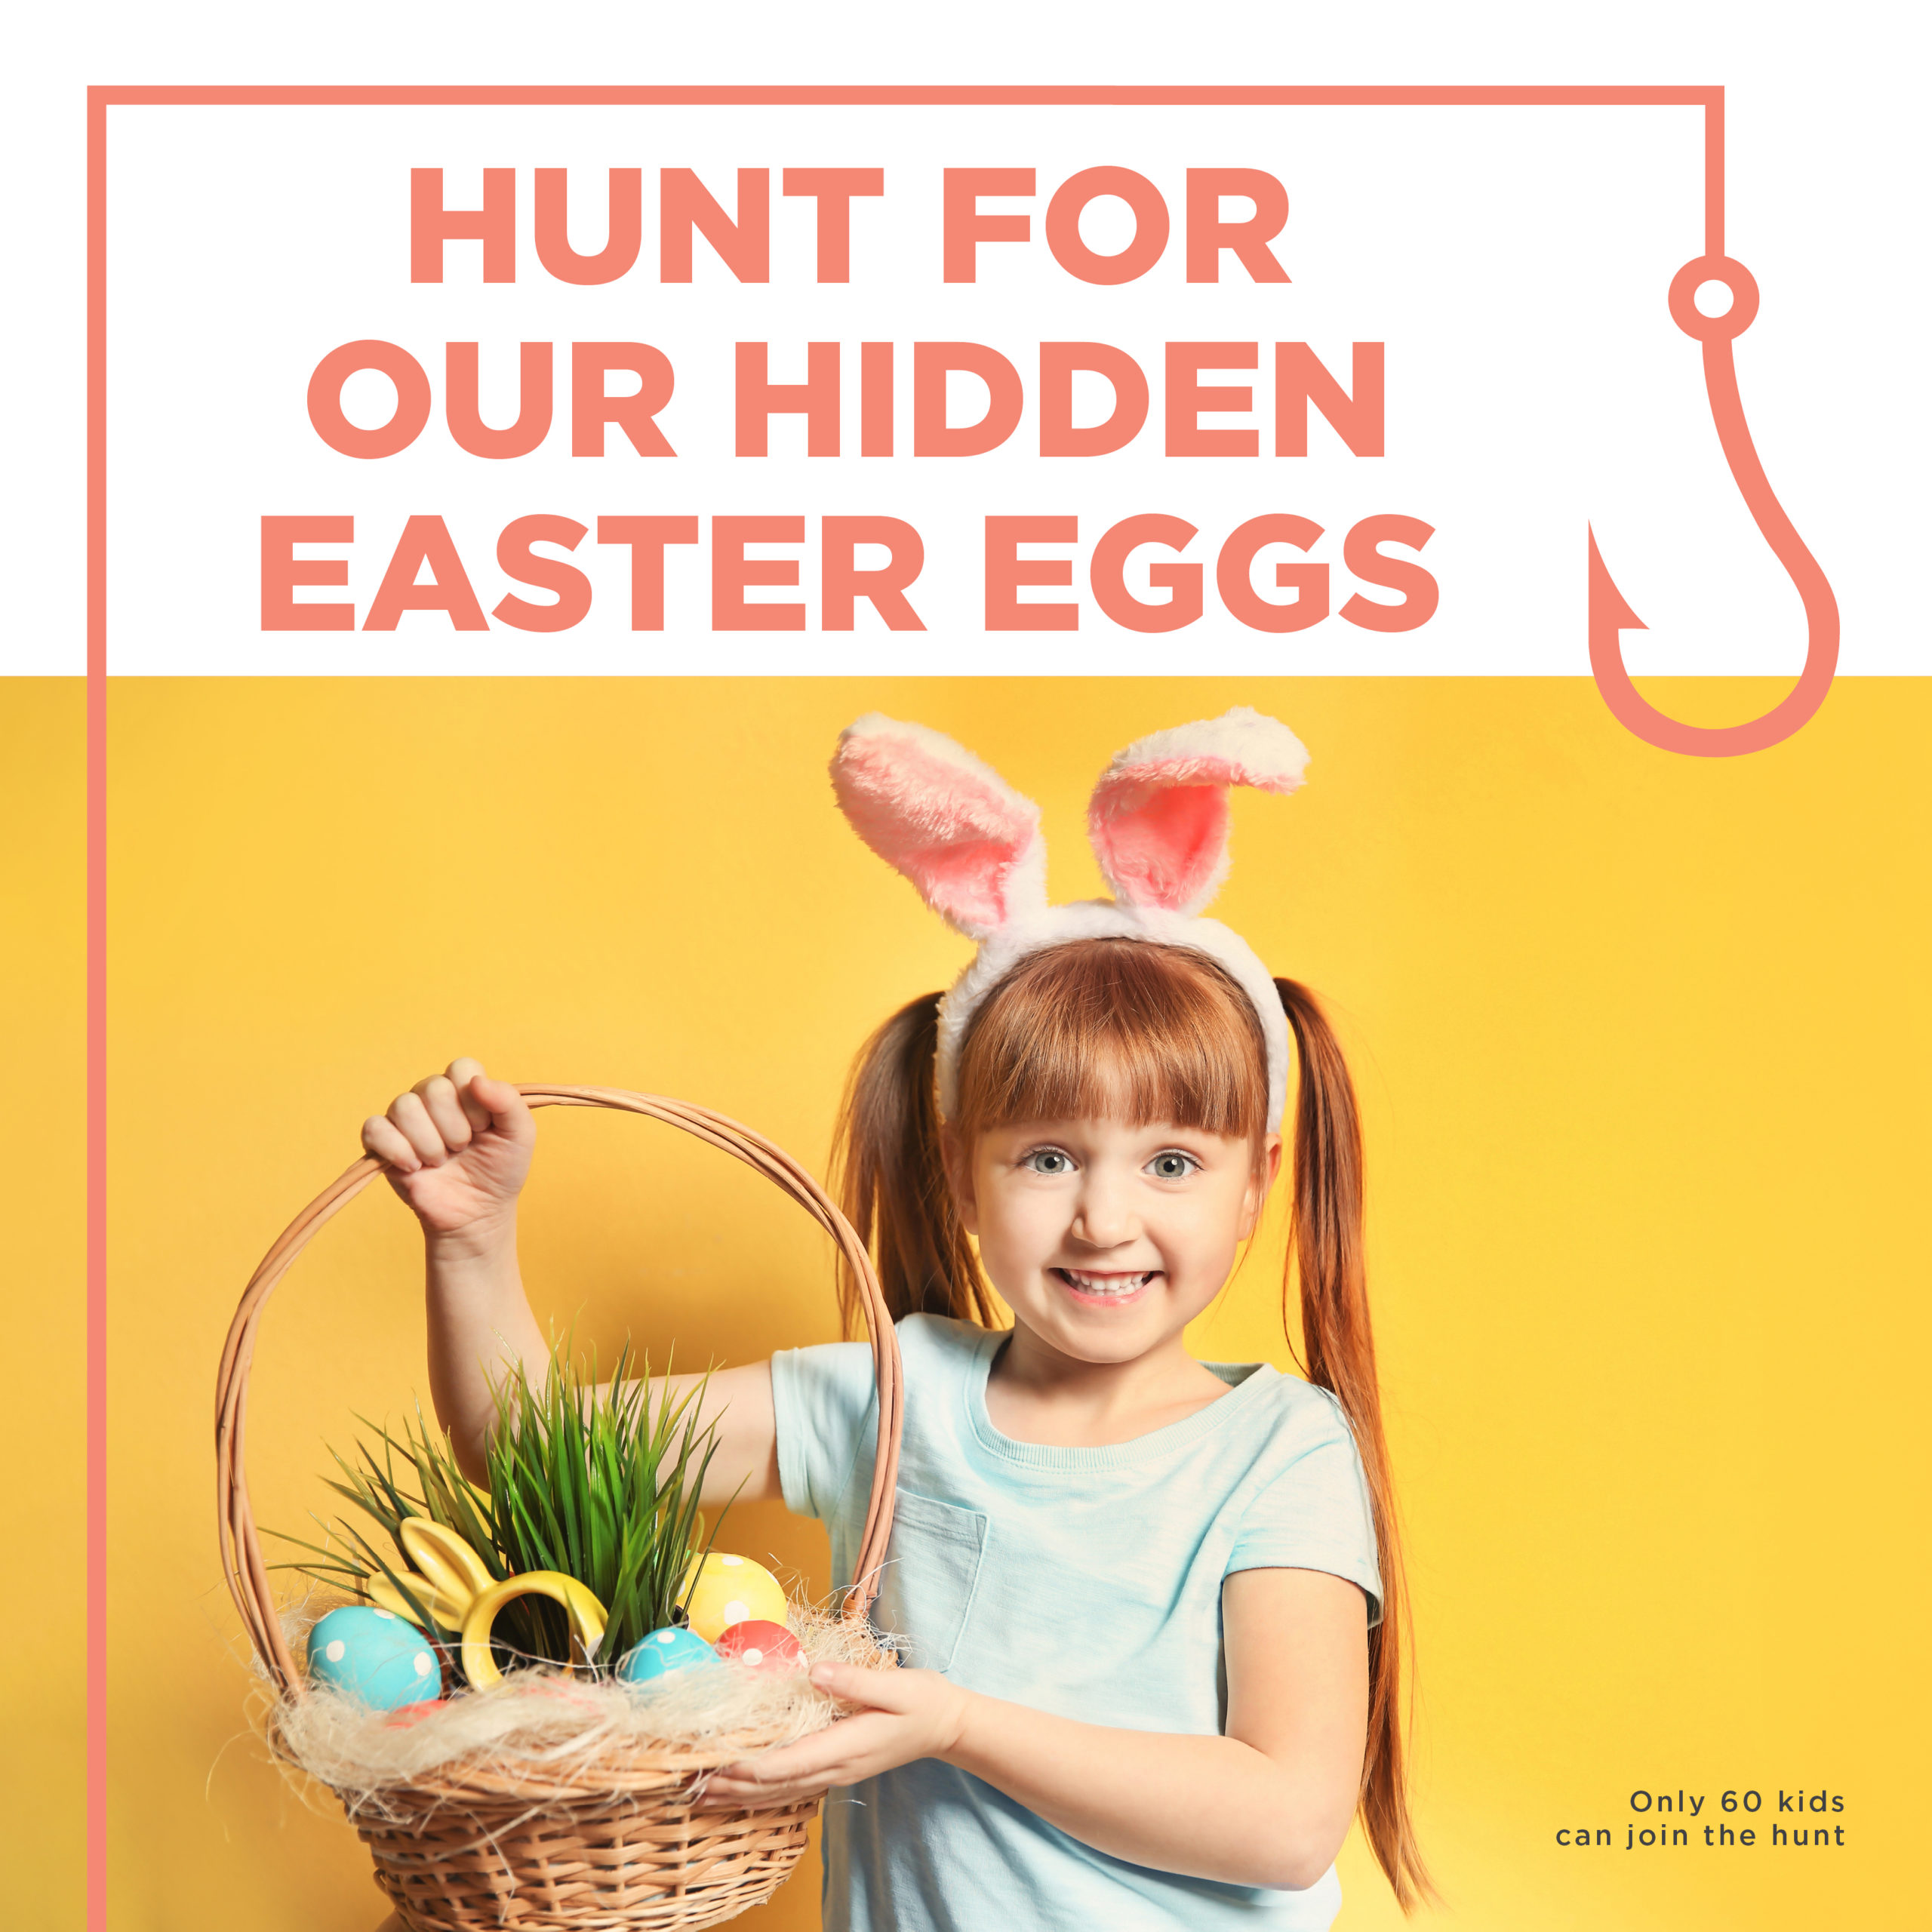 Easter Egg Hunt at Whale Coast Mall